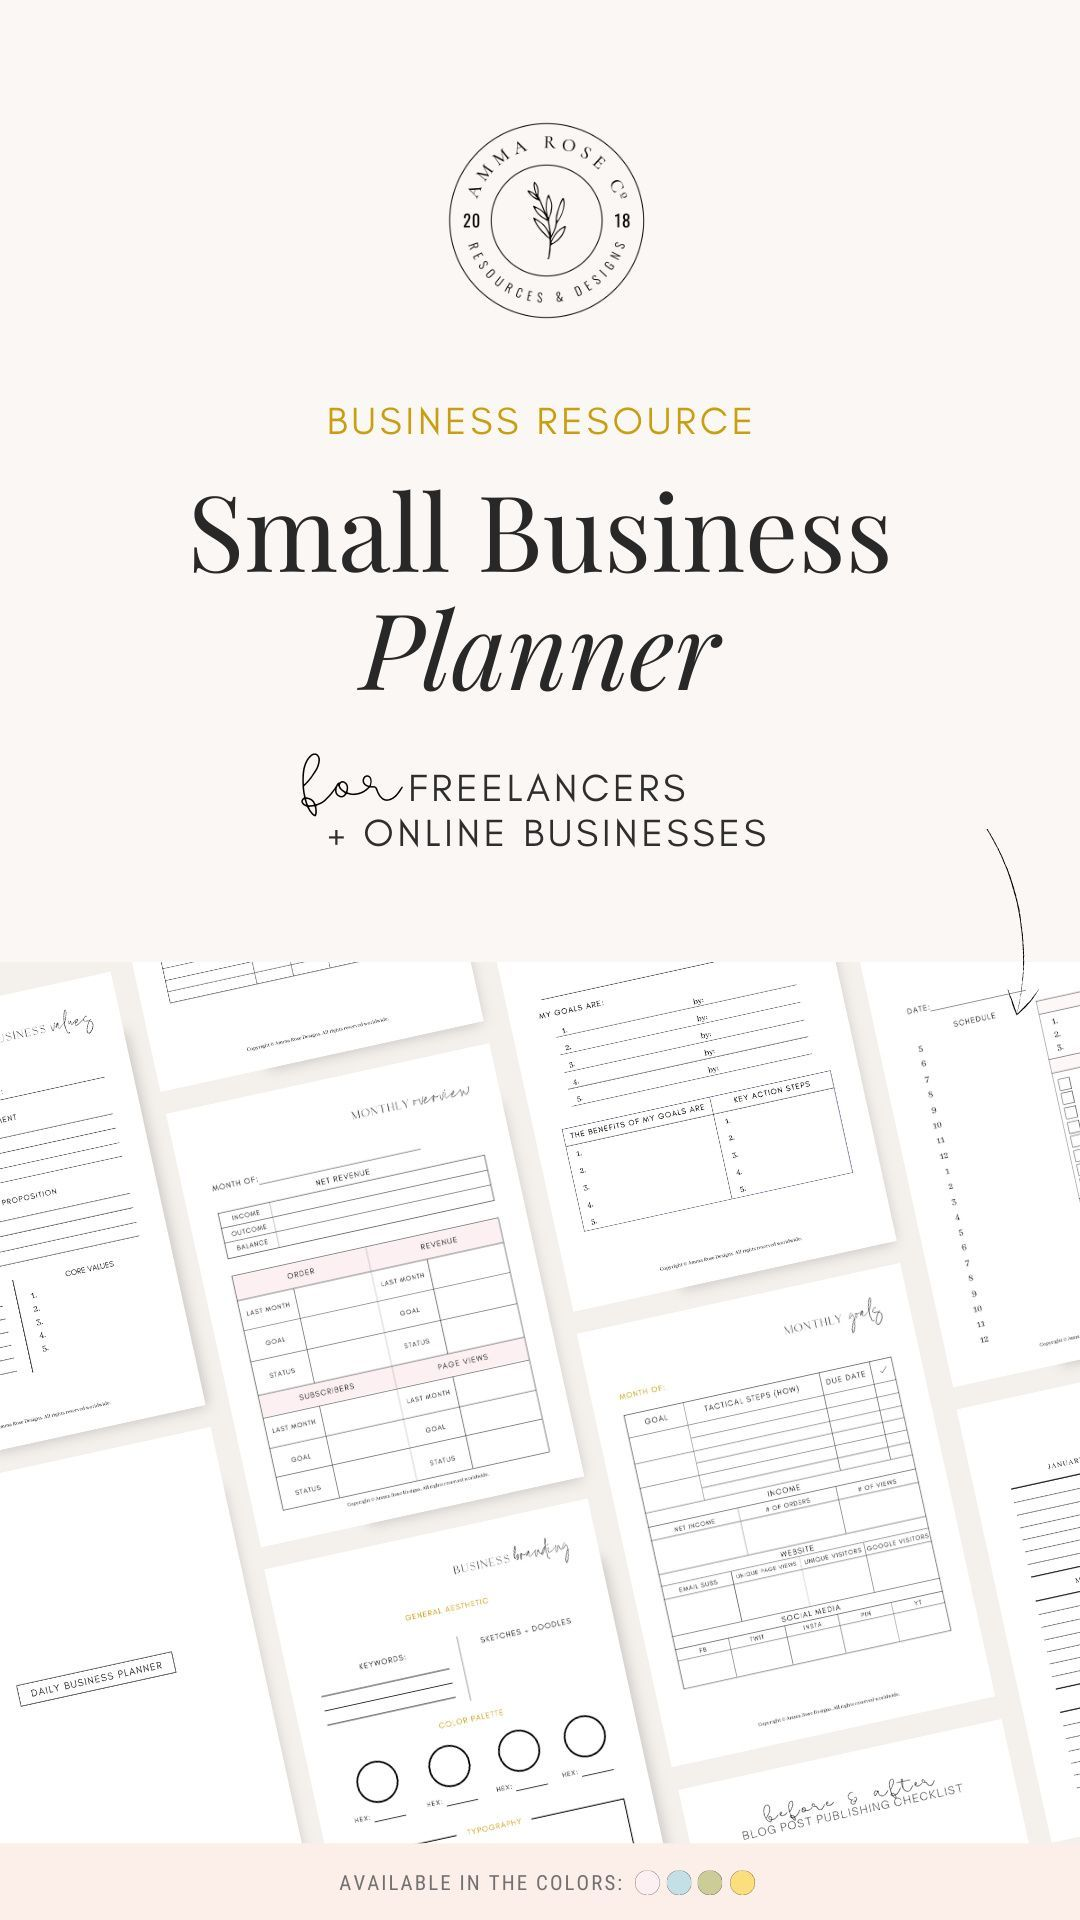 Small Business Planner Small Business Printable Planner